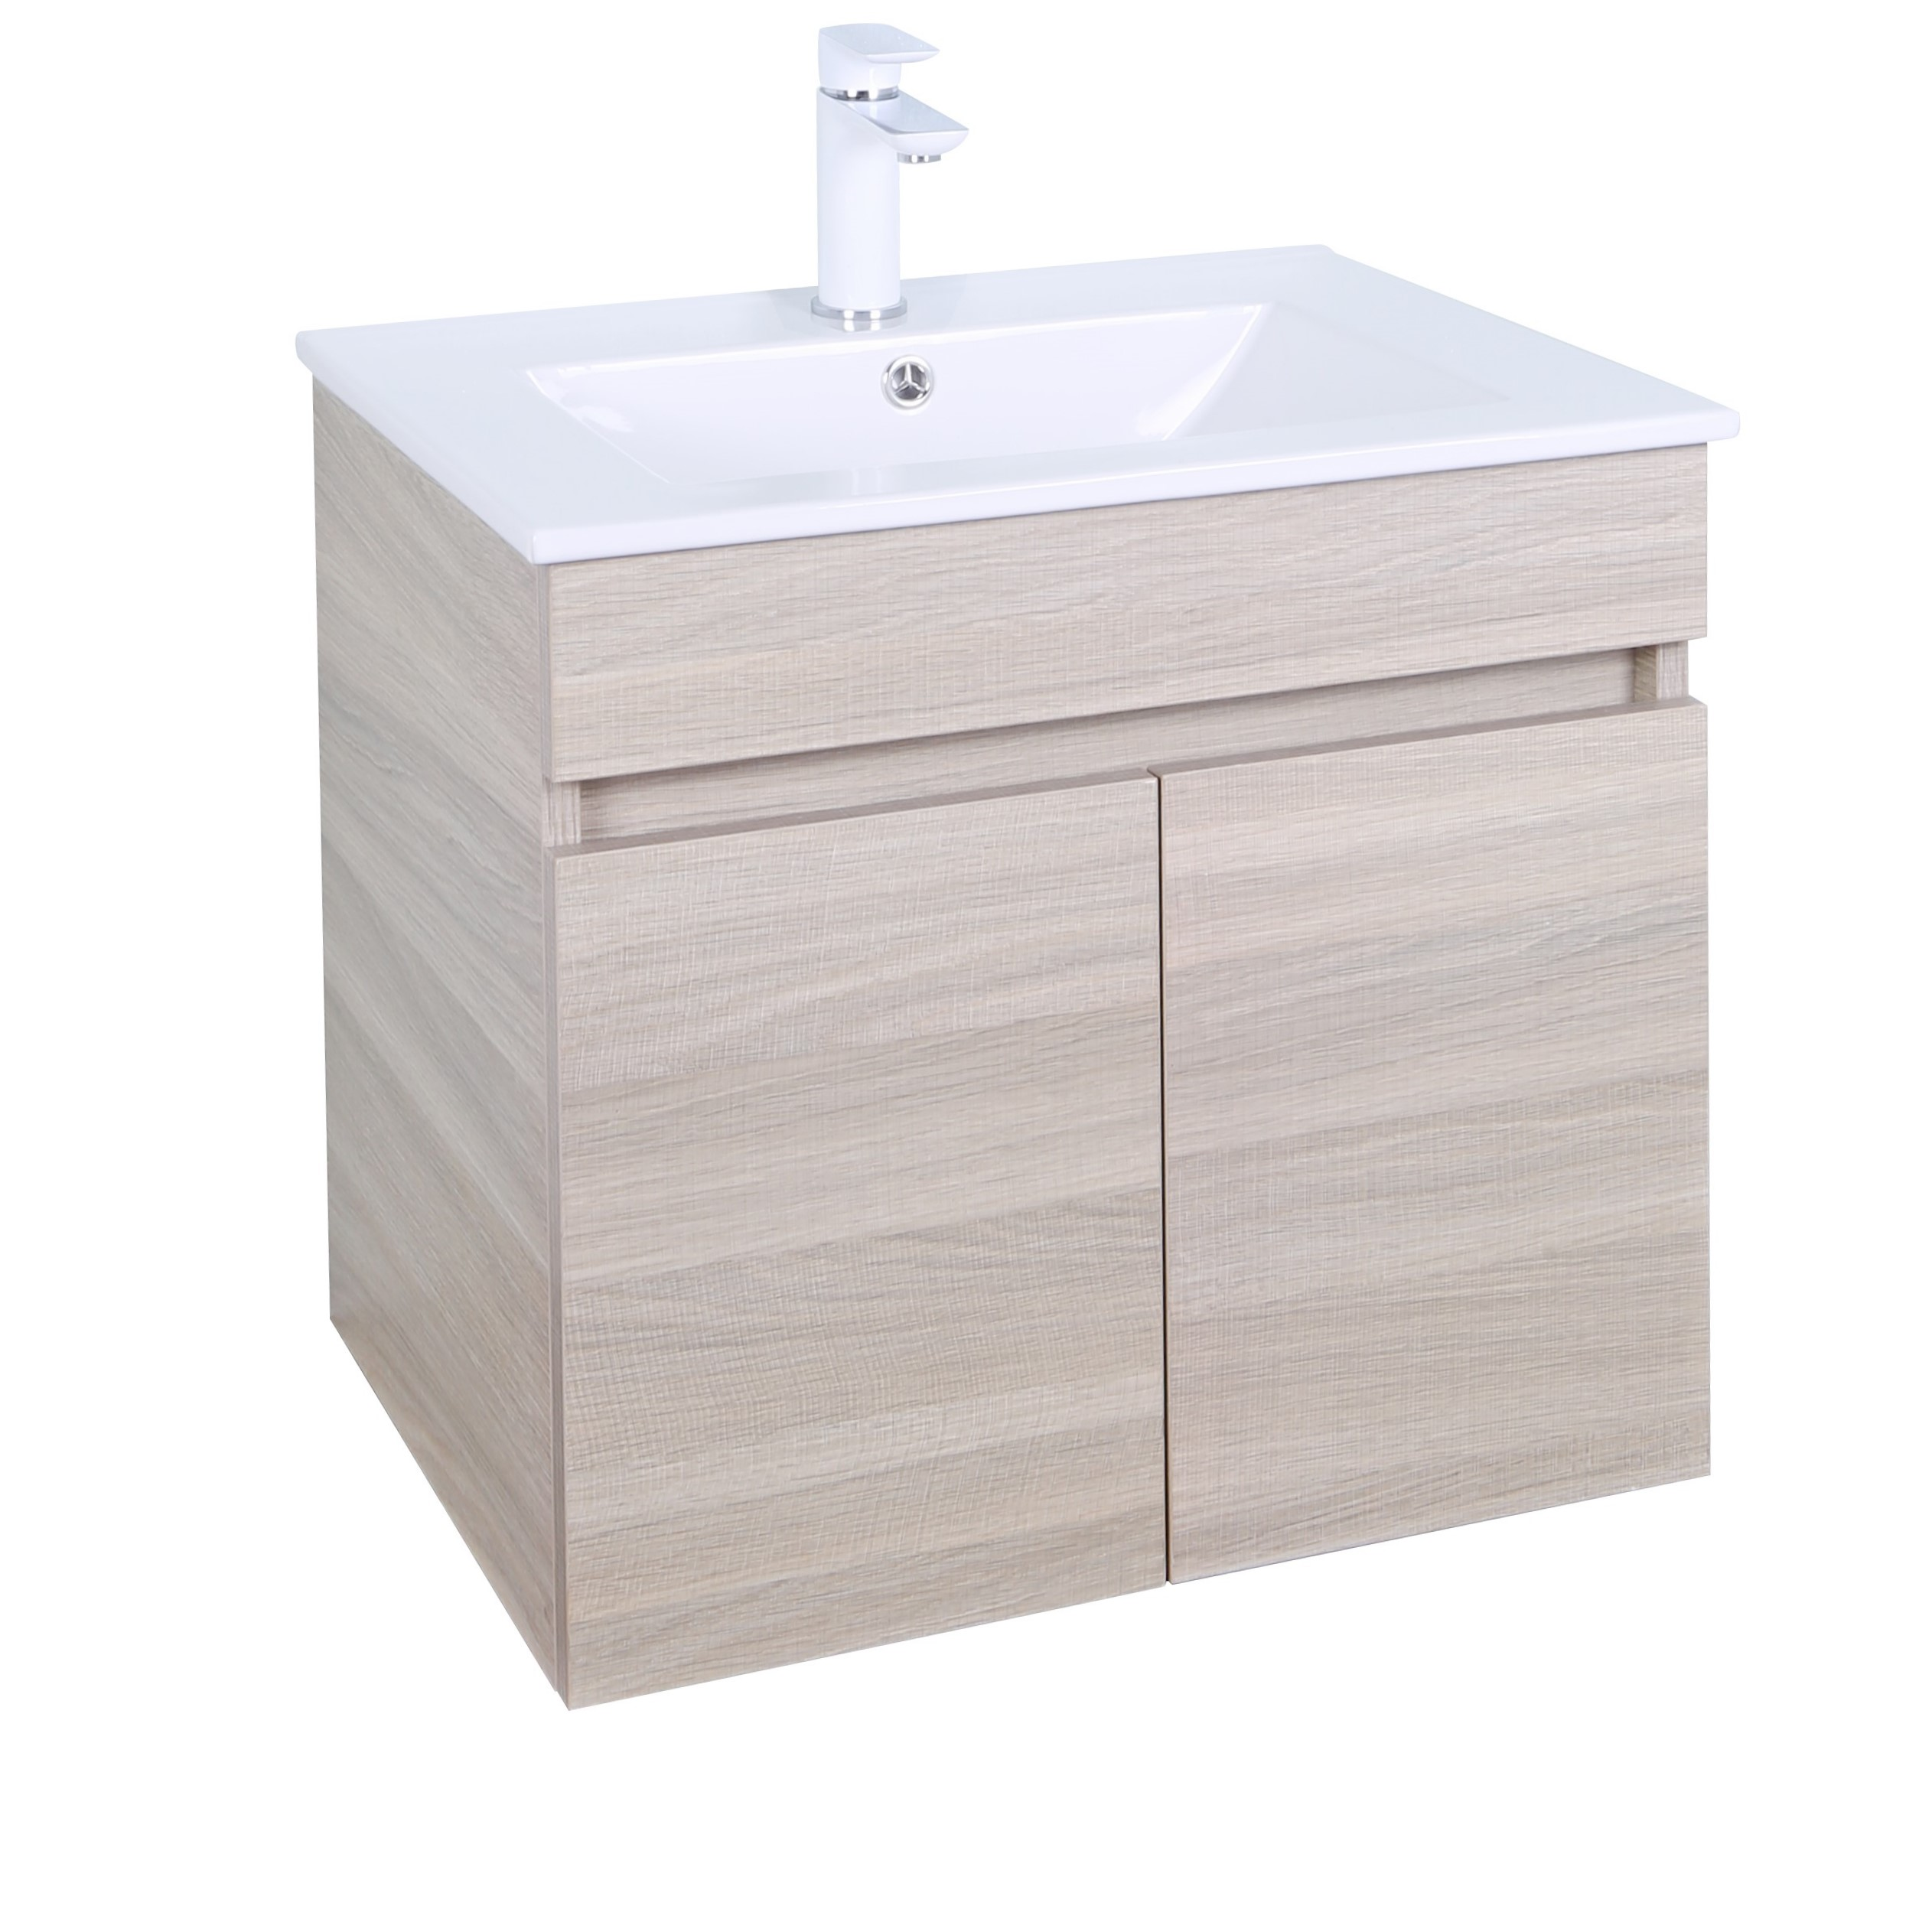 EV64WH-OAK Evie Color Vanity